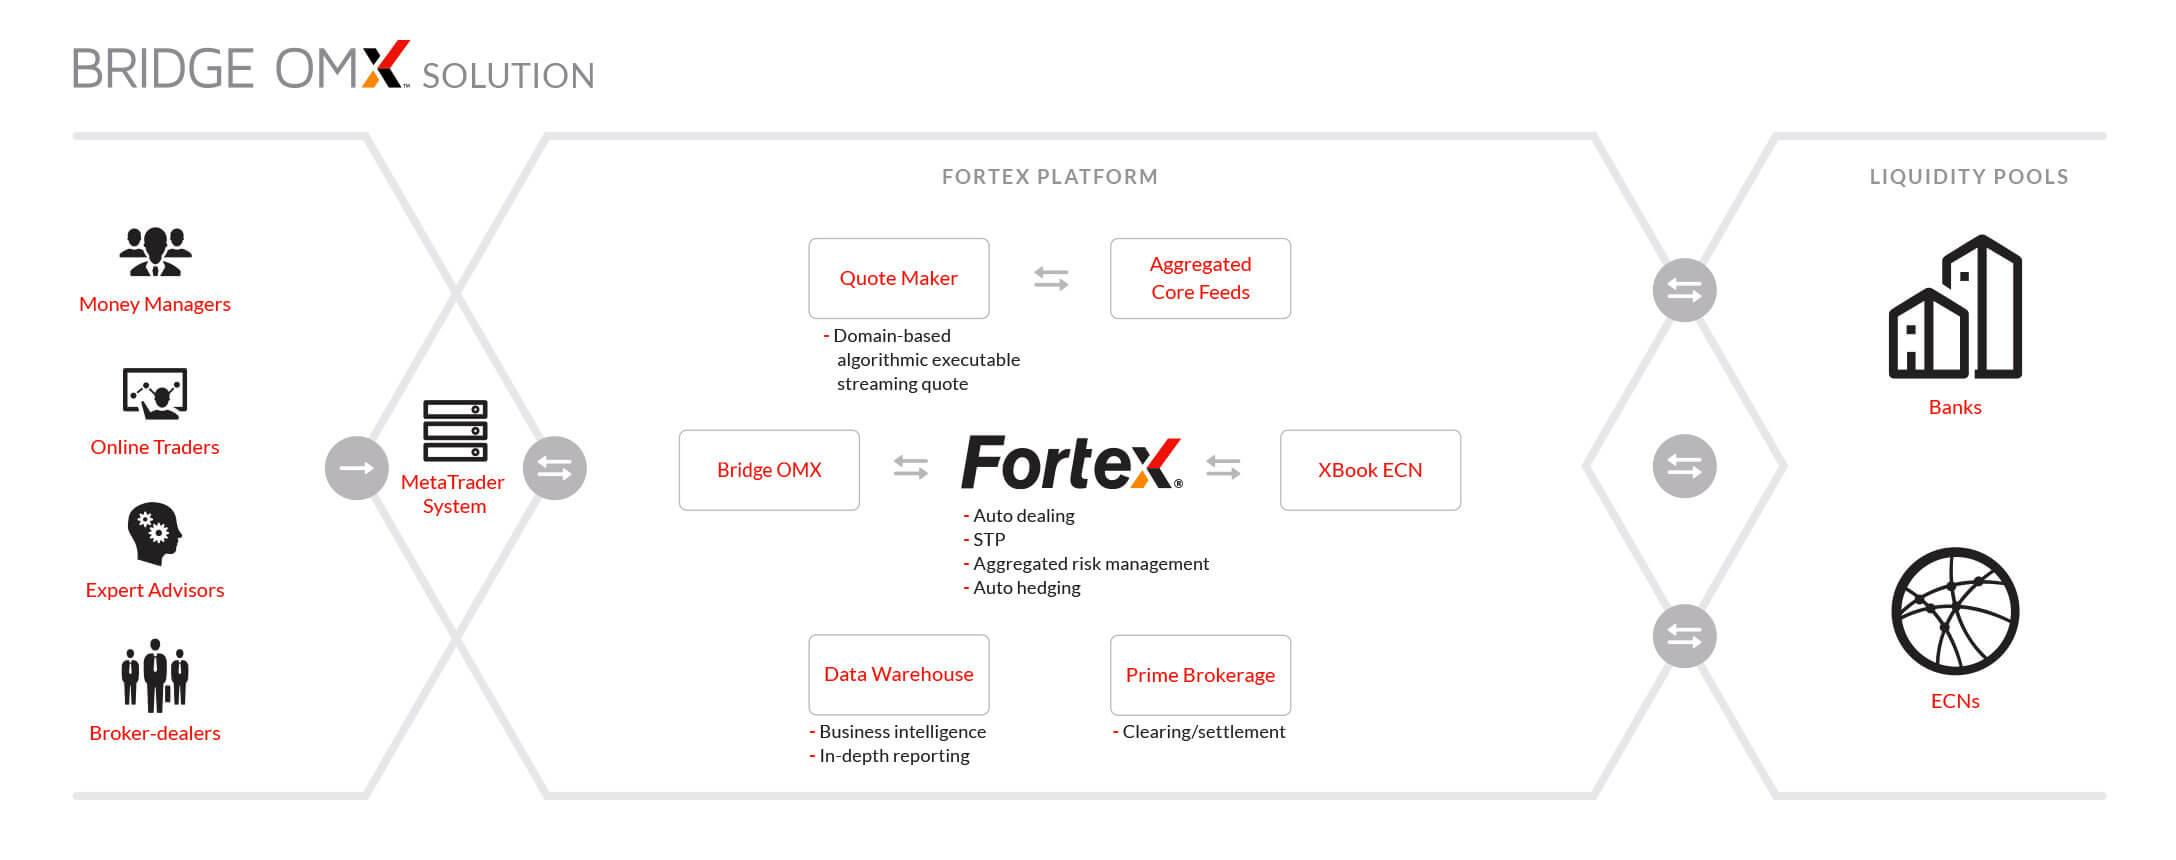 FX Trading for MetaTrader MT4 Users | MT4 Bridge OMX | Fortex